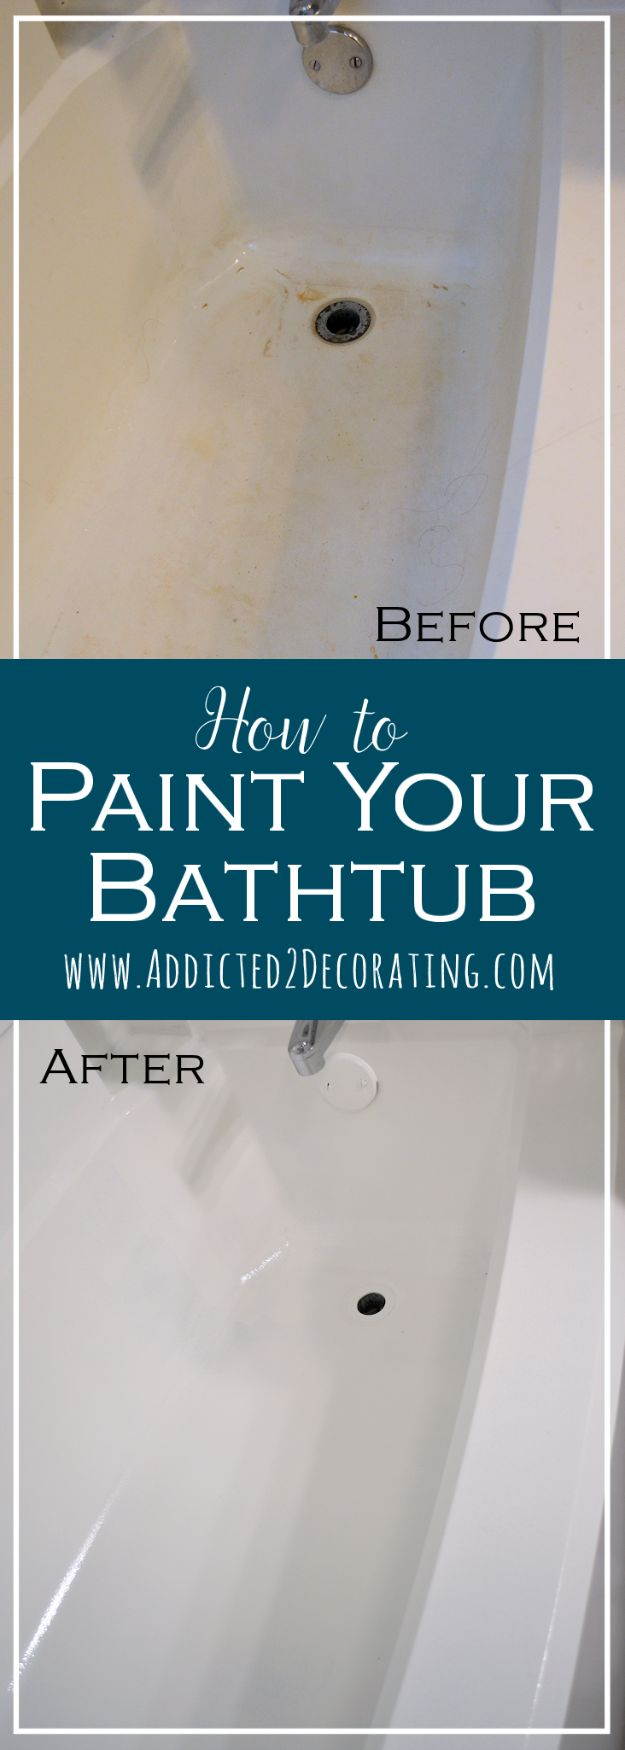 Easy Home Repair Hacks - Paint A Bathtub - Quick Ways to Easily Fix Broken Things Around The House - DIY Tricks for Home Improvement and Repairs - Simple Solutions for Kitchen, Bath, Garage and Yard - Caulk, Grout, Wall Repair and Wood Patching and Staining #hacks #homeimprovement